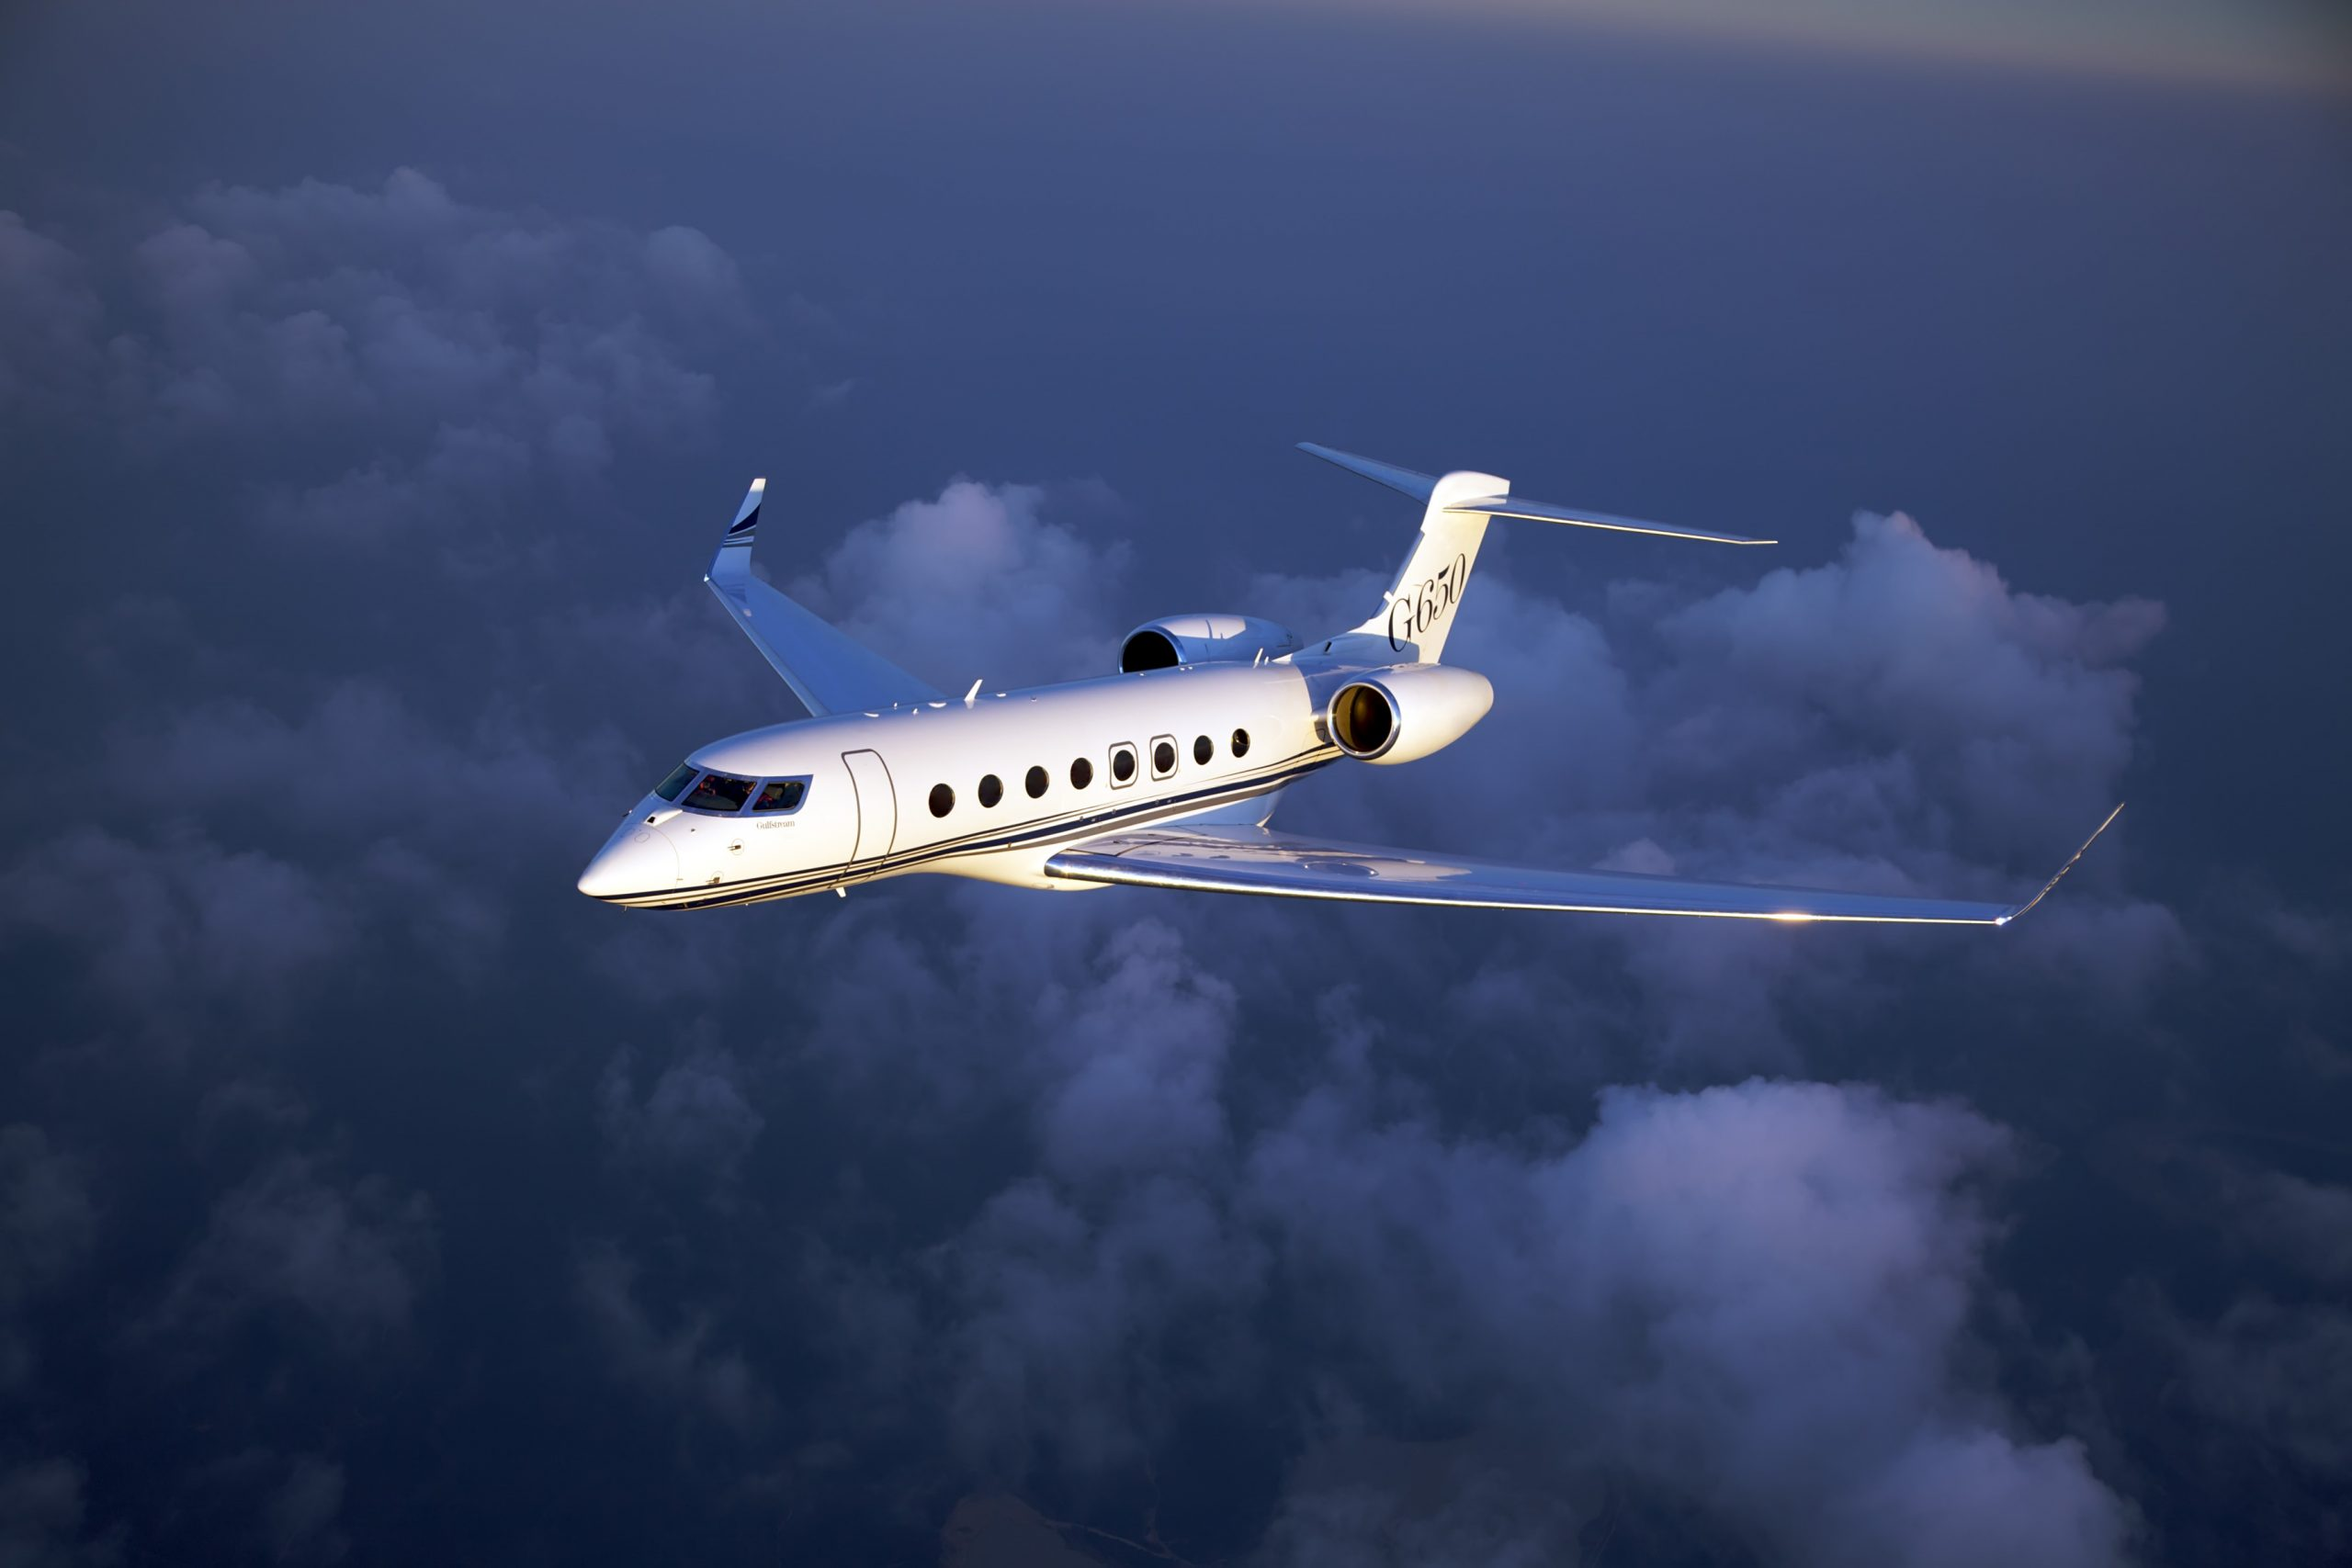 Hat trick! Empire Aviation Group becomes one of region's major operators of the Gulfstream G650 business jet, with the addition of third aircraft to its managed fleet